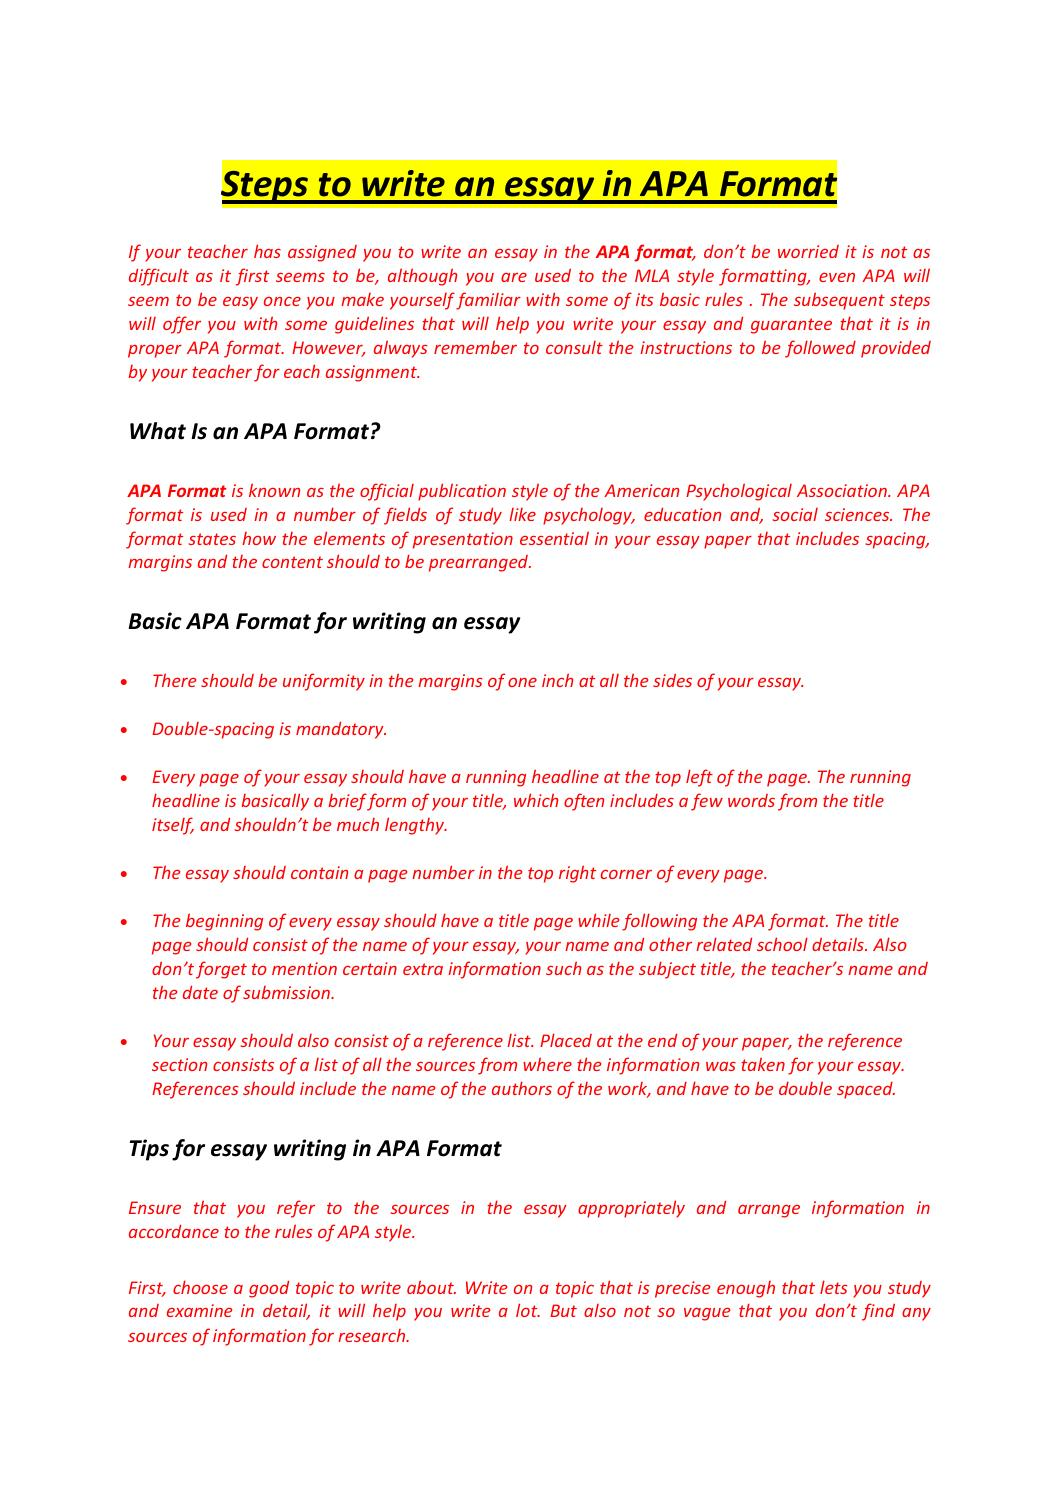 write a properly referenced essay on